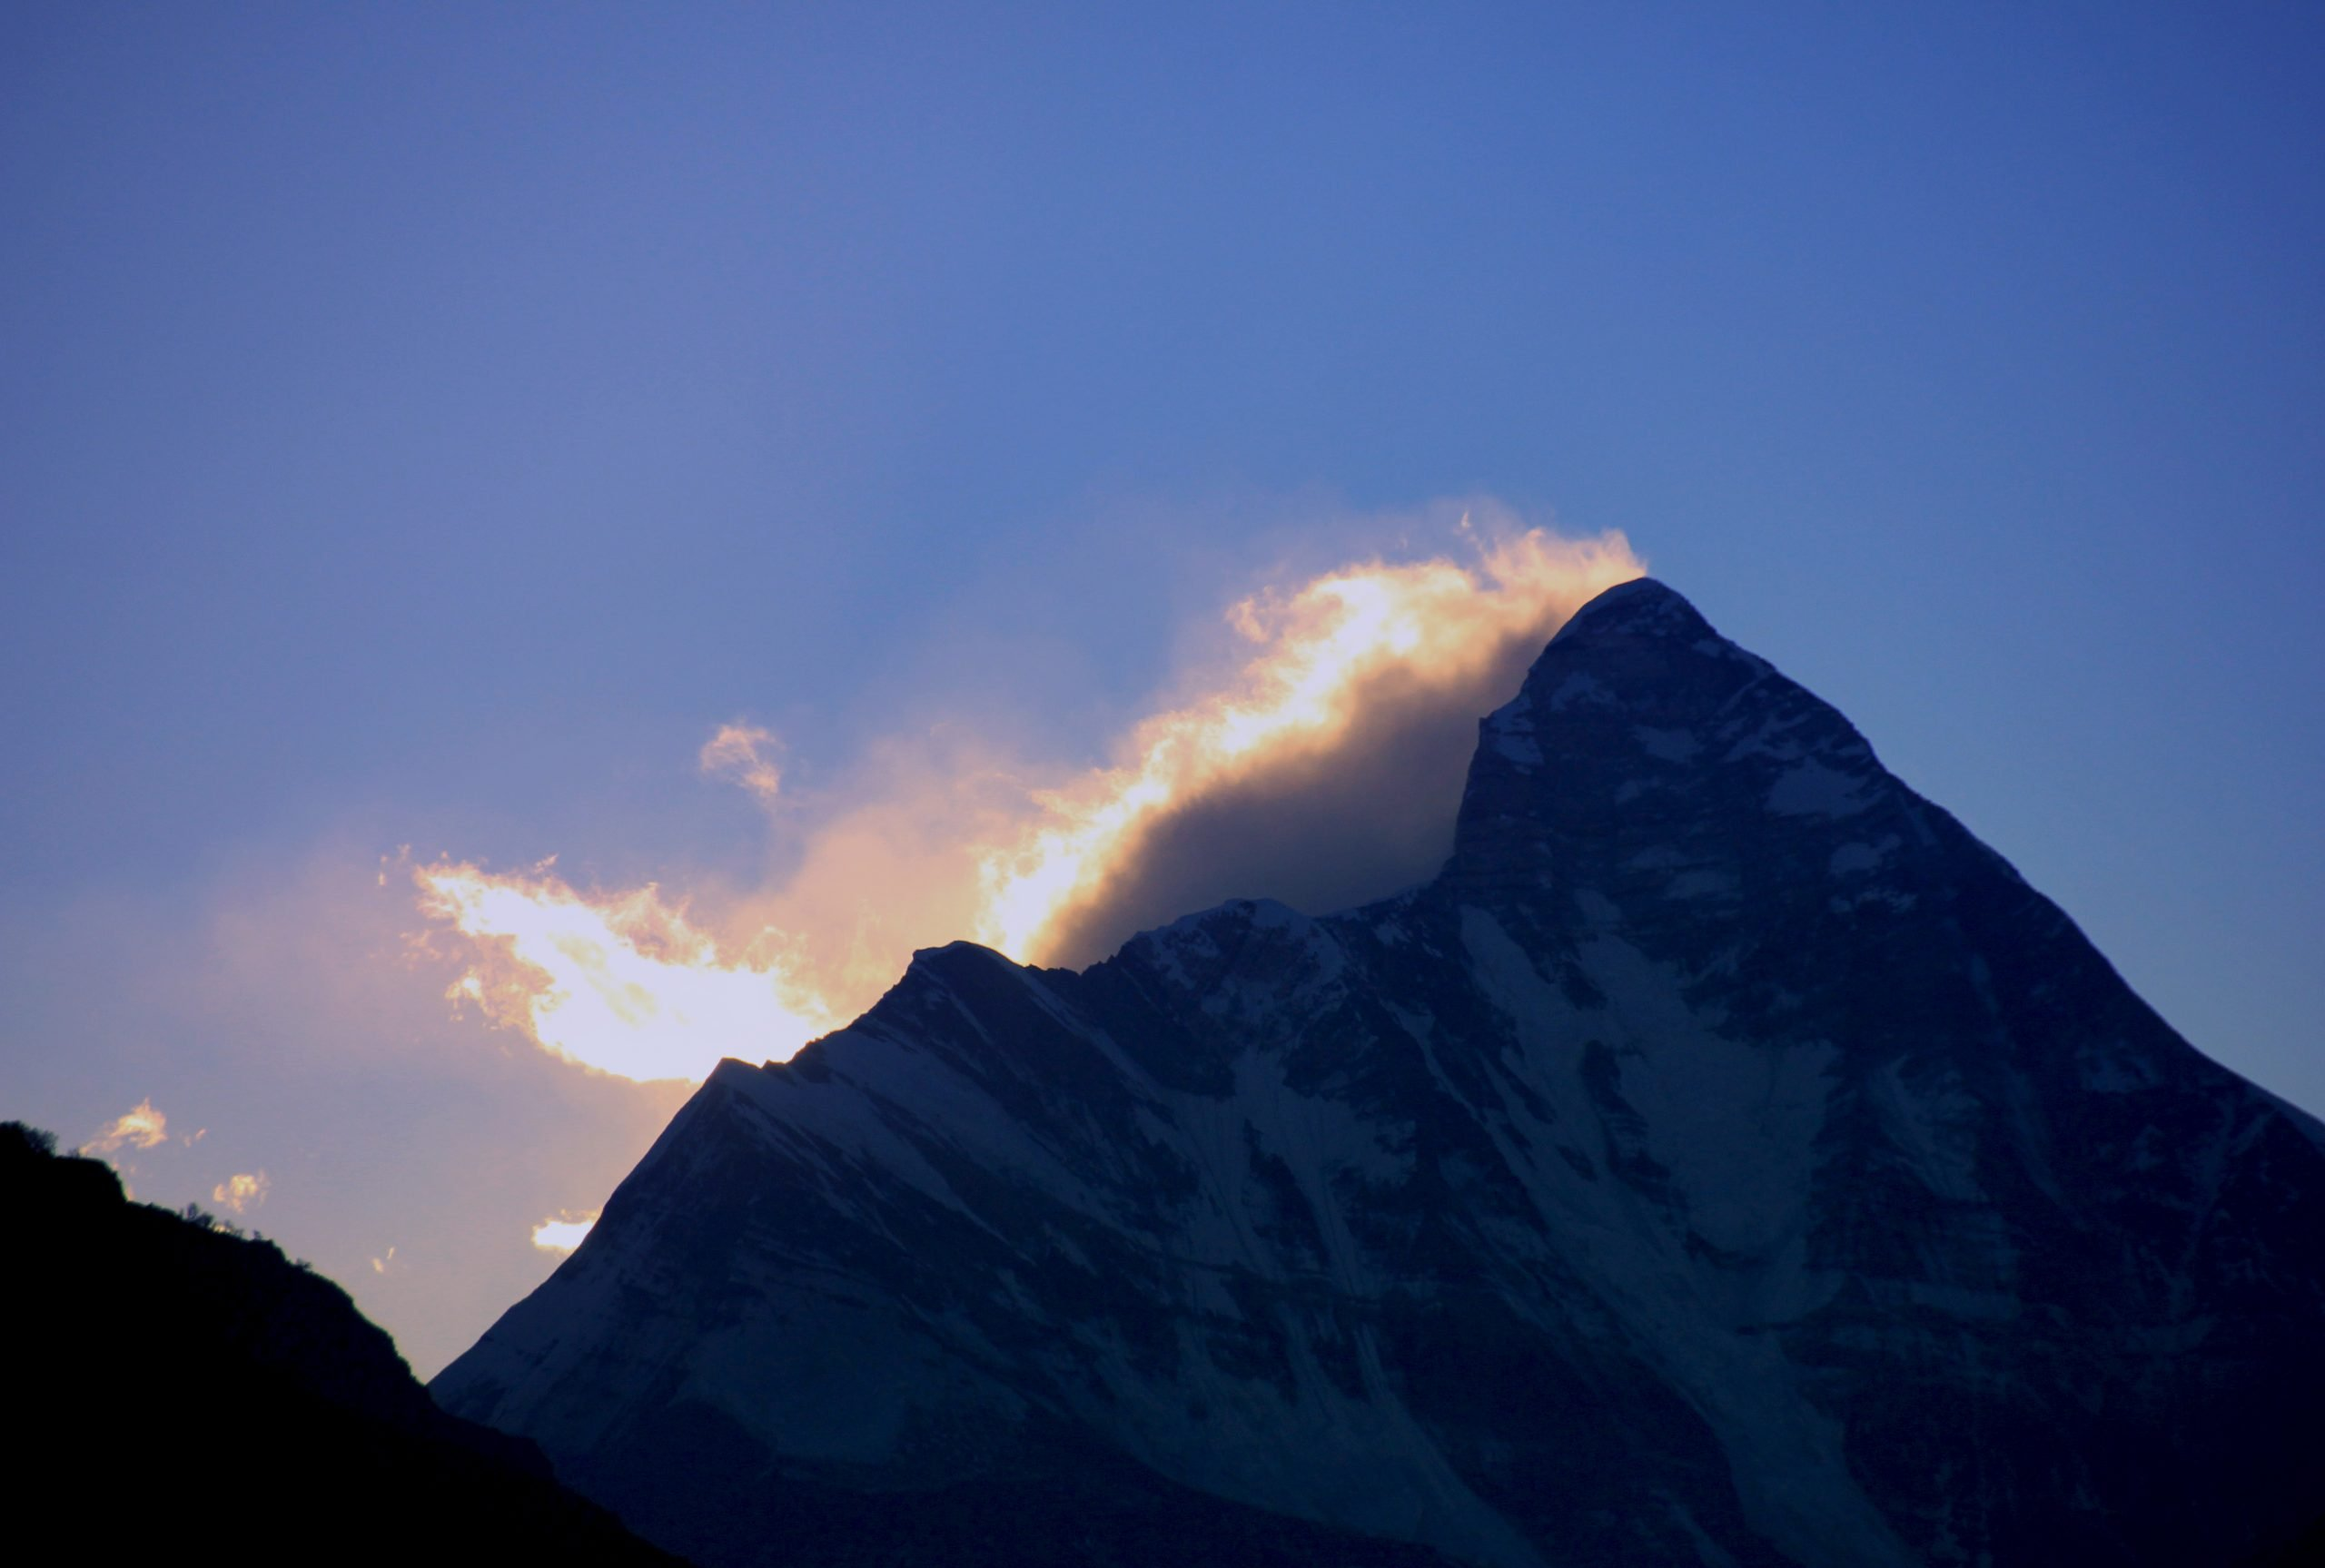 Sunrise and Nanda Devi Viewed from Foreground in Auli